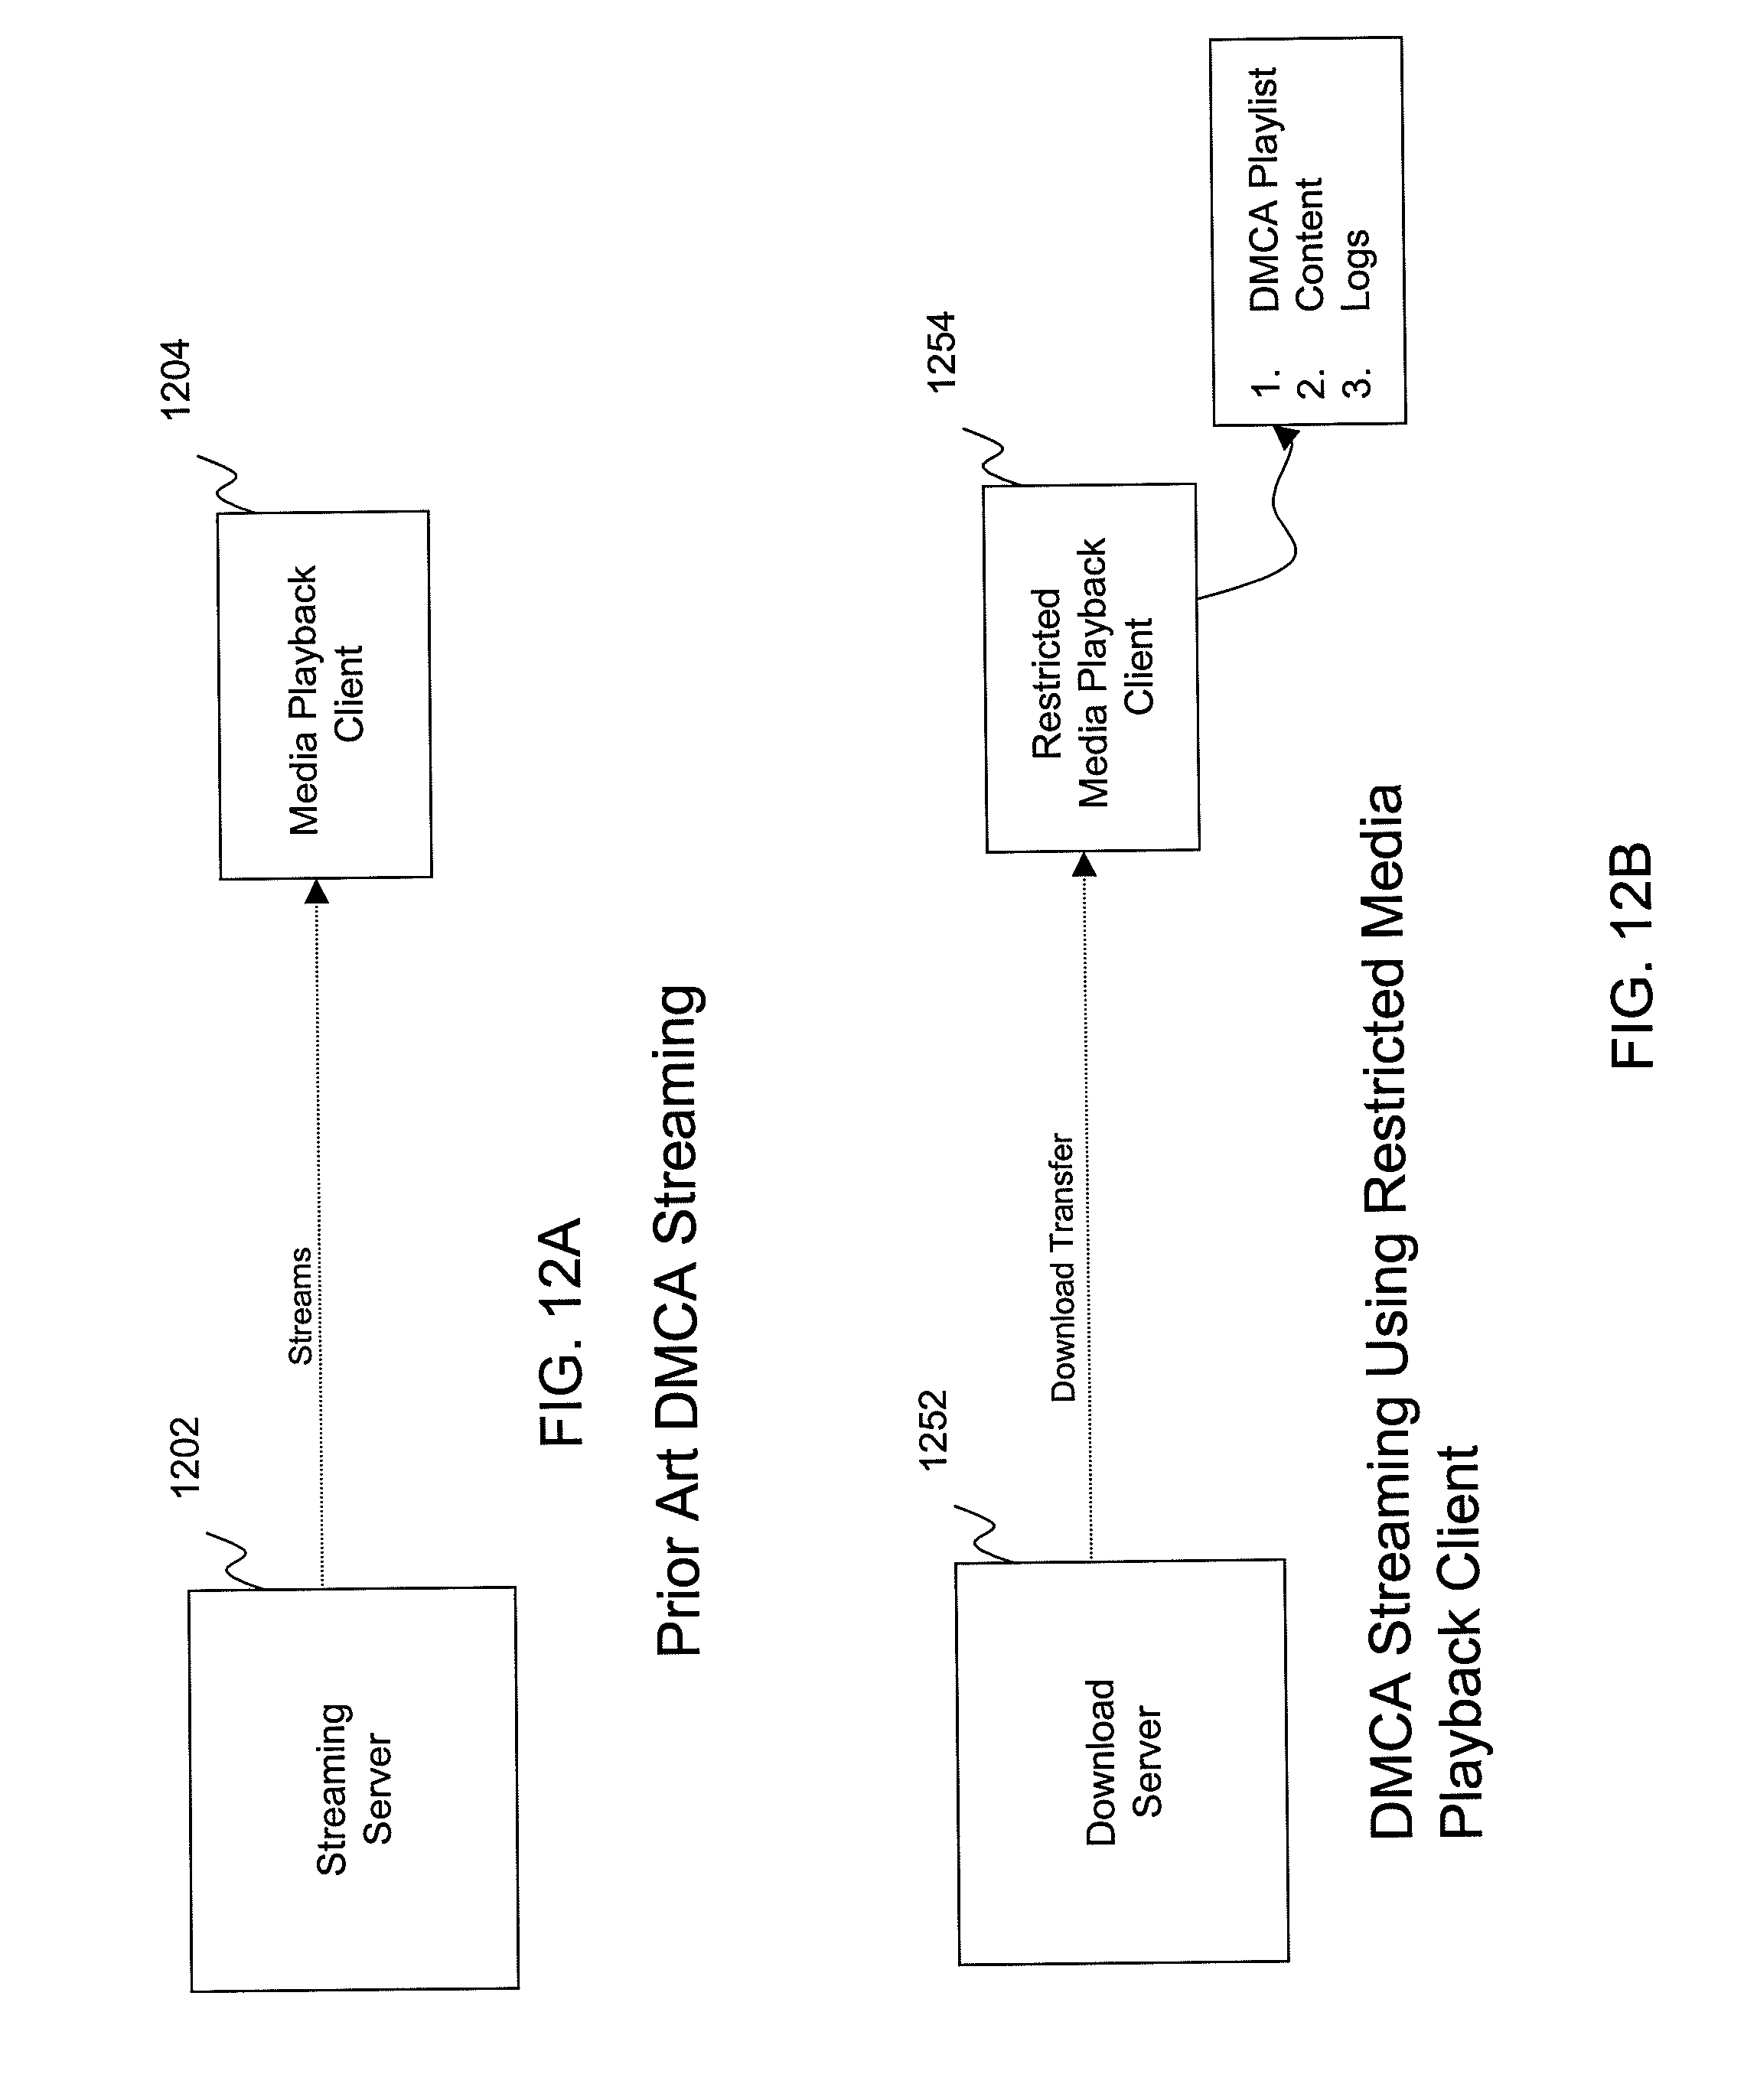 Patent Us 8763157 B2 Fig 2 A Wiring Diagram Of For Ward And Reverse Jogging Circuit 0 Petitions